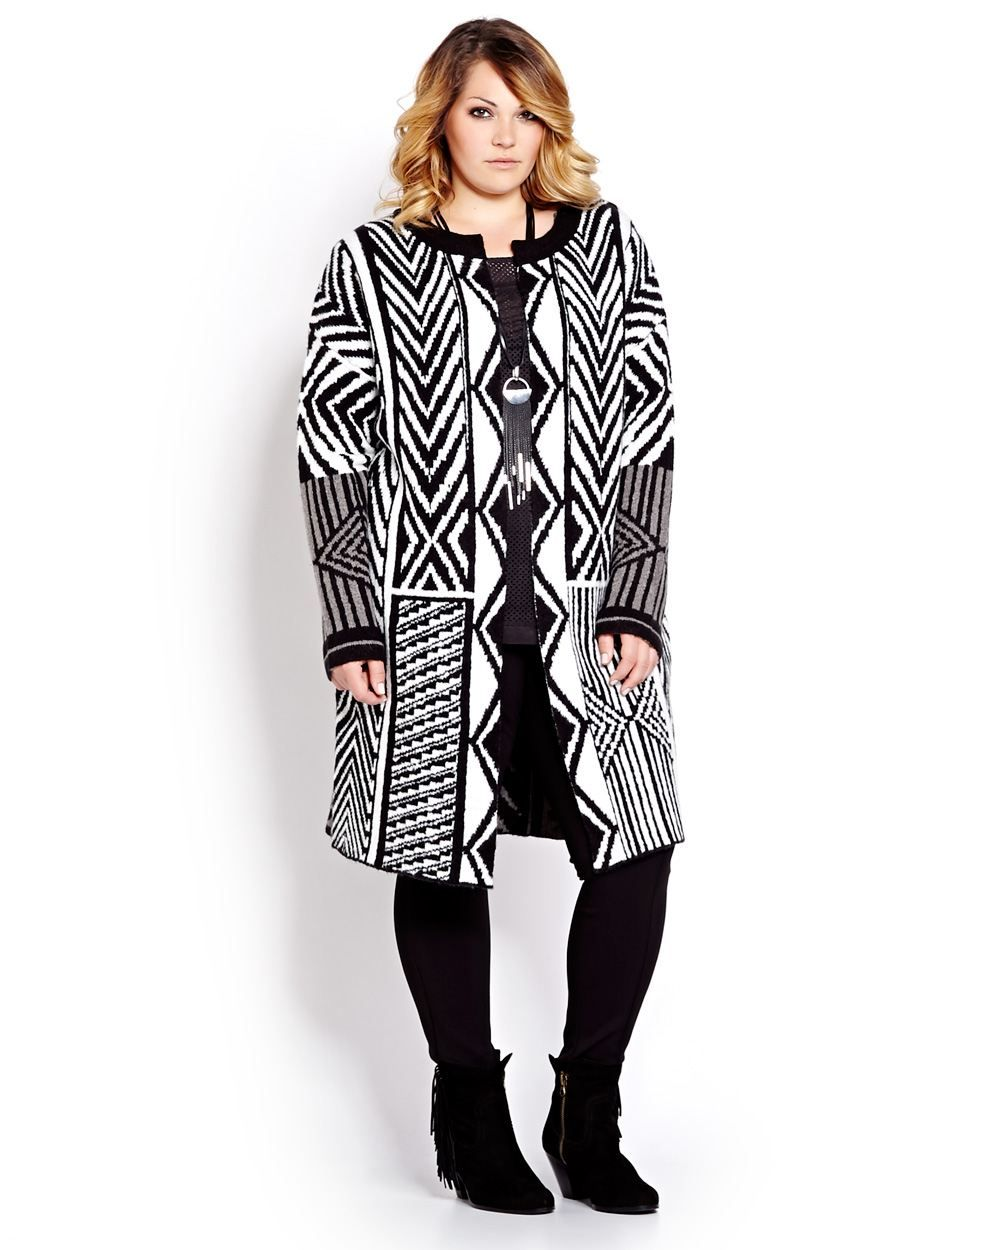 Chic duster cardigan by Michel Studio with bold geo pattern brings ...